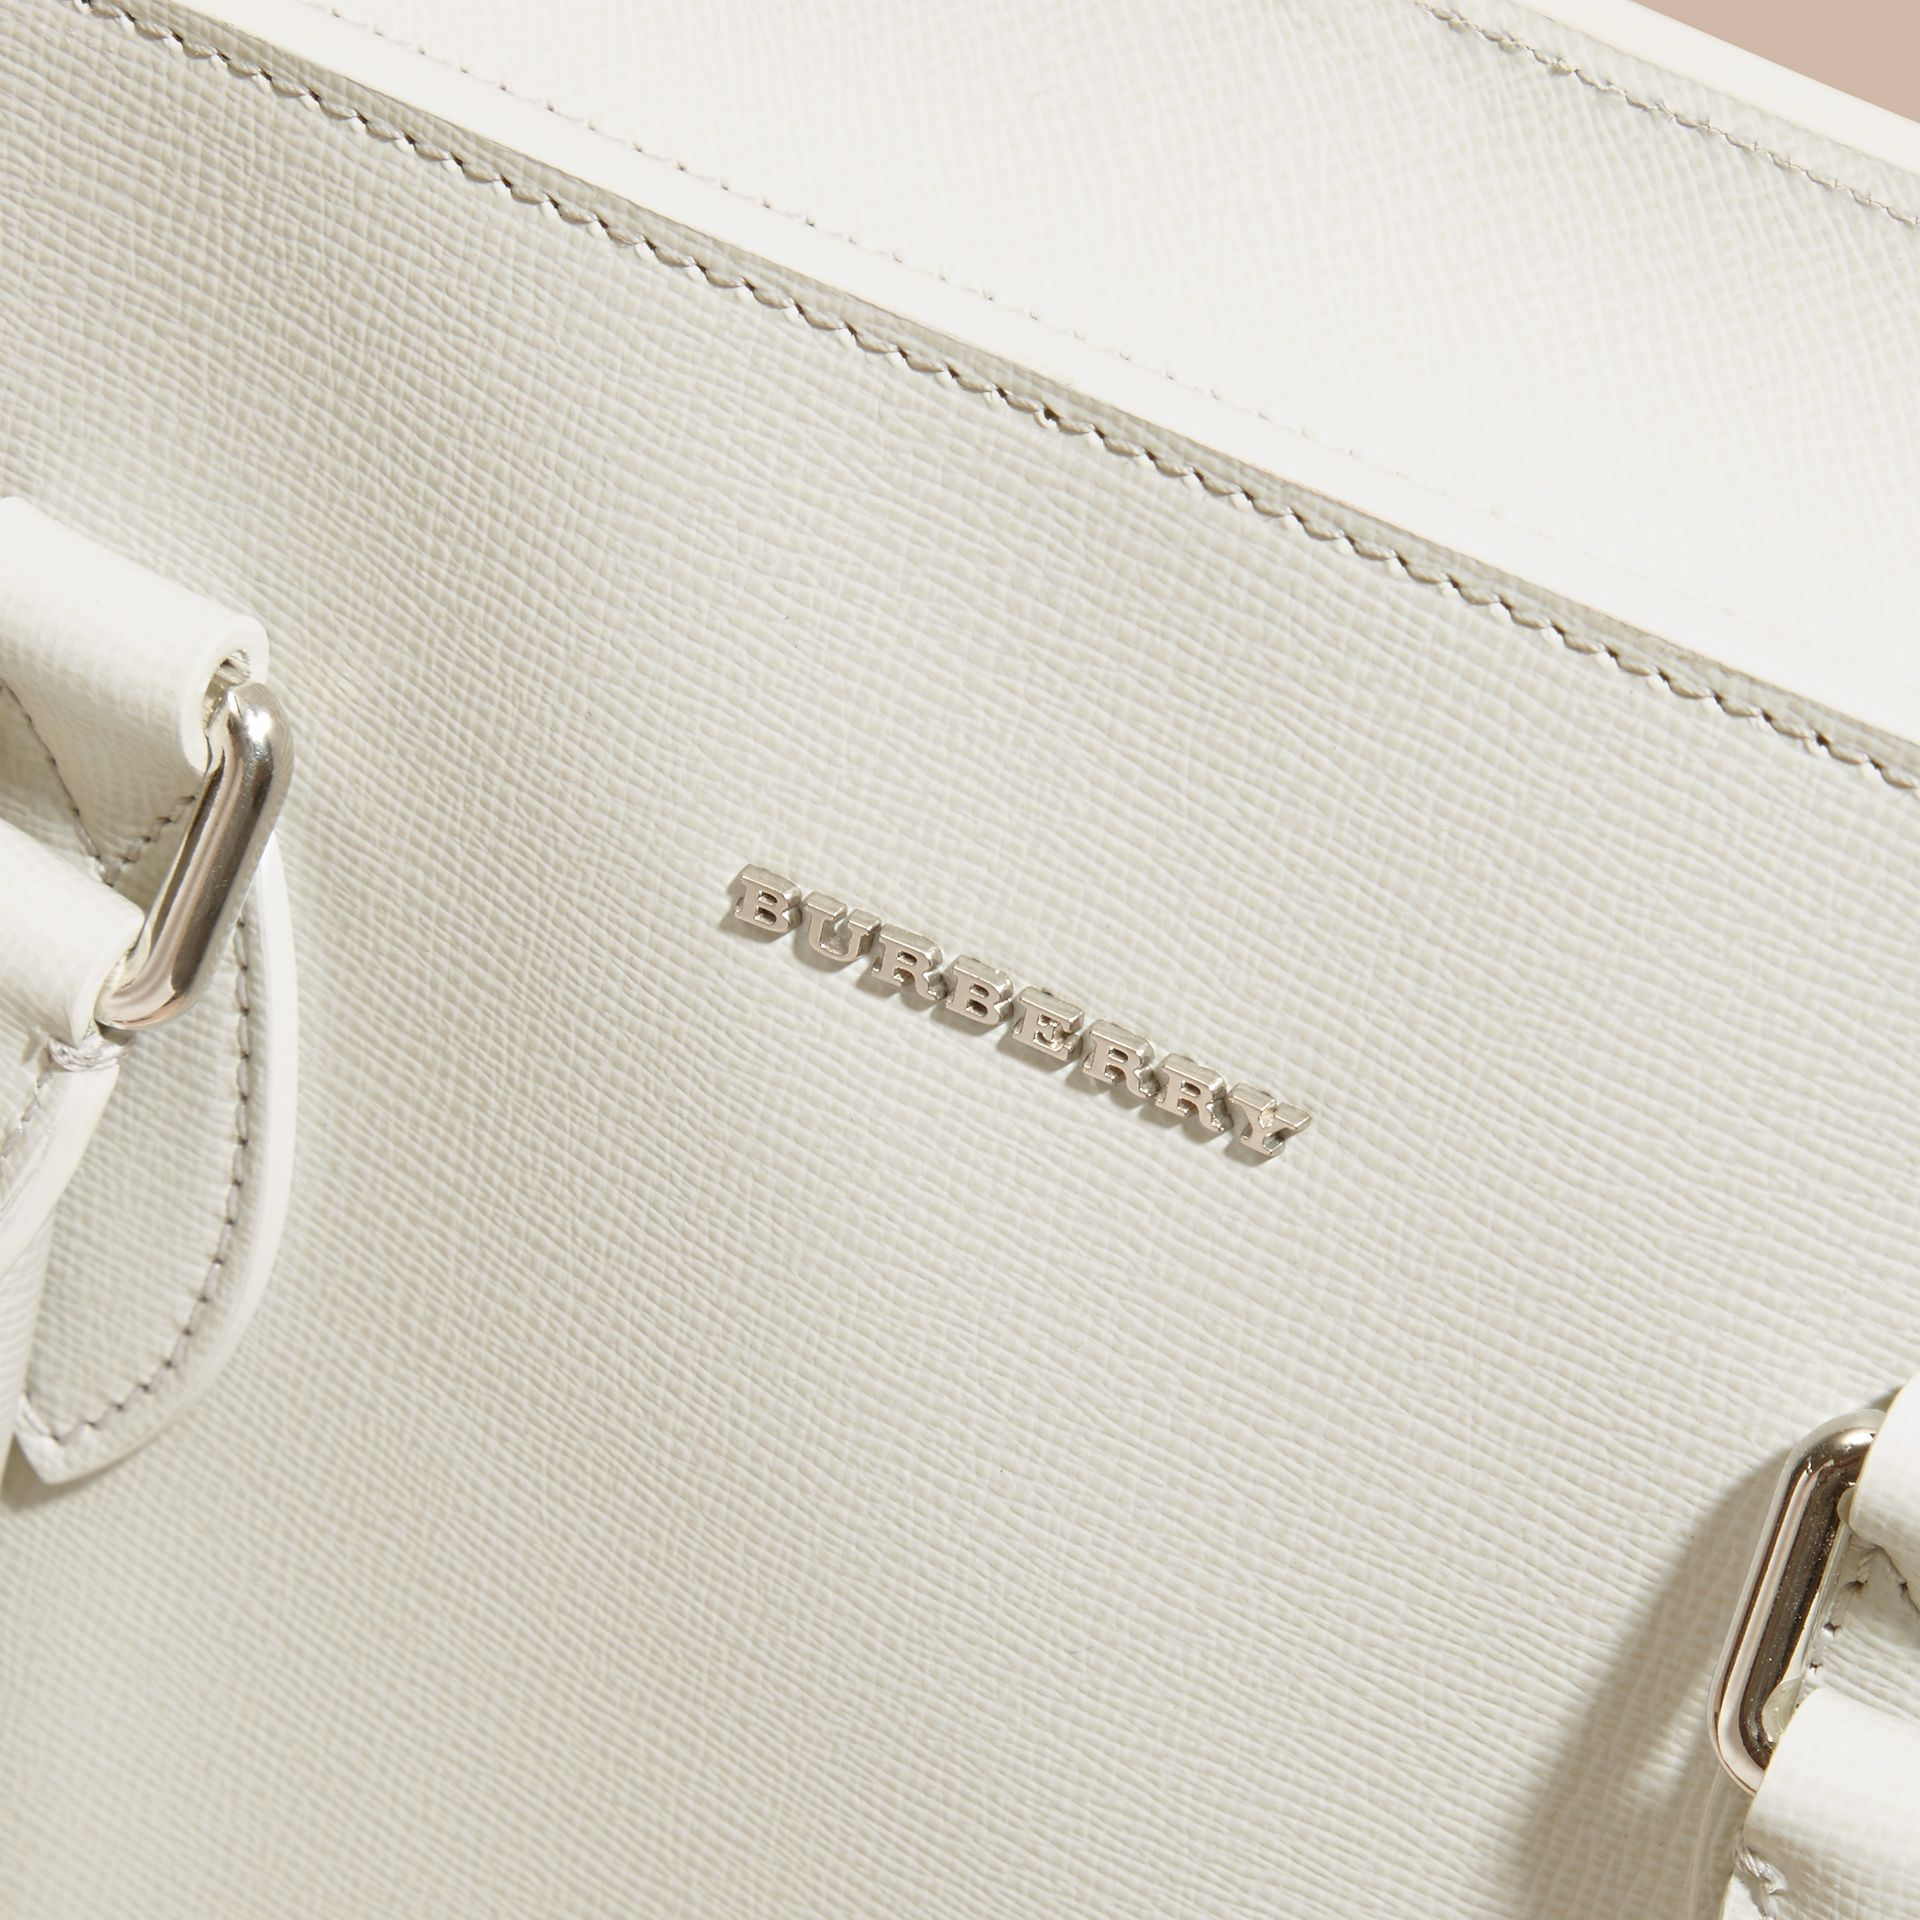 London Leather Tote Bag in Pale Stone - Men | Burberry - gallery image 7